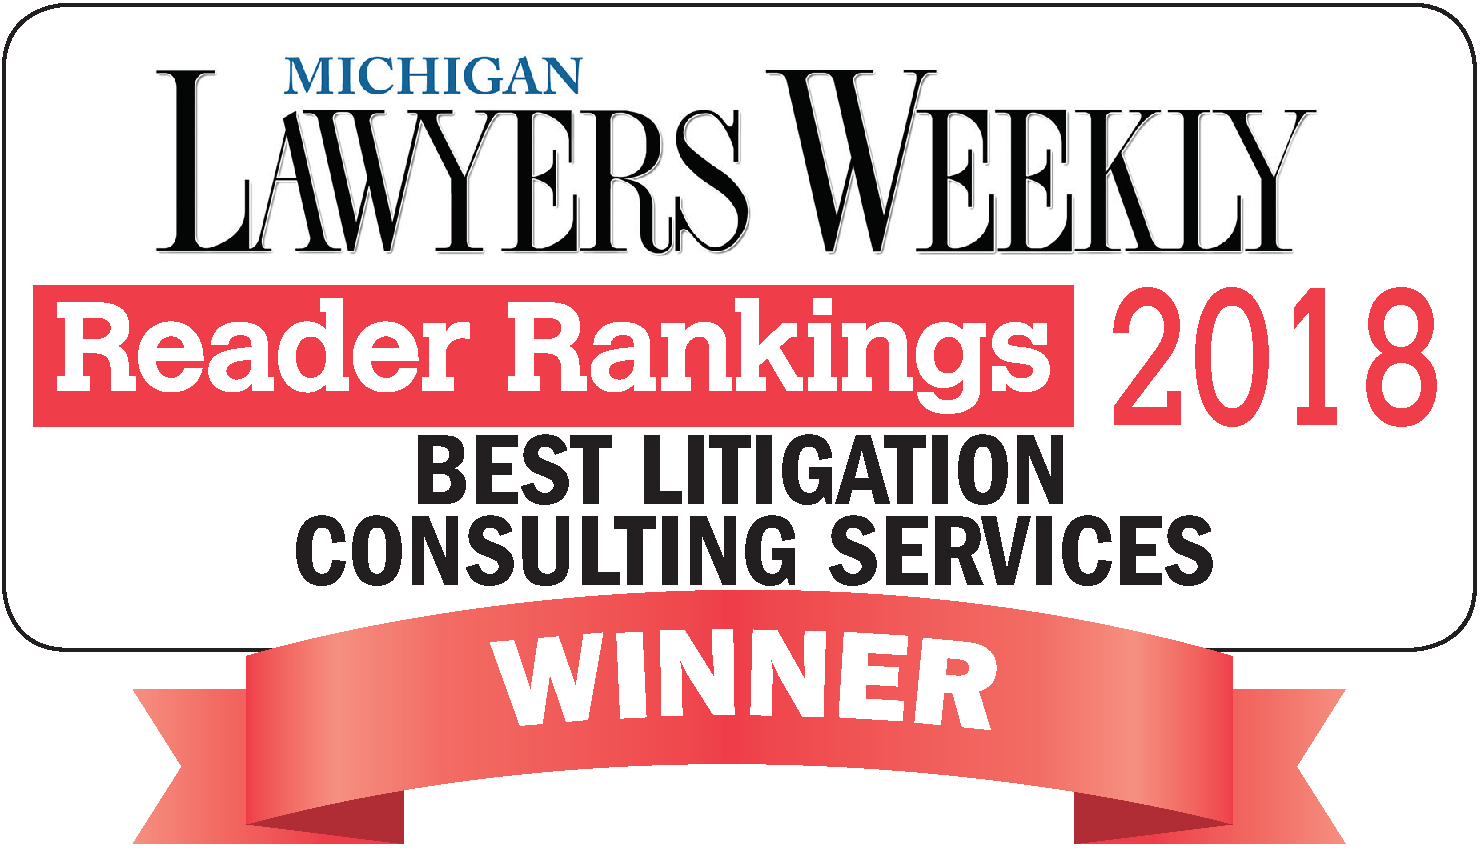 Back to Back 2017-2018 Michigan Lawyers Weekly  Reader Rankings – Best Litigation Consulting Services